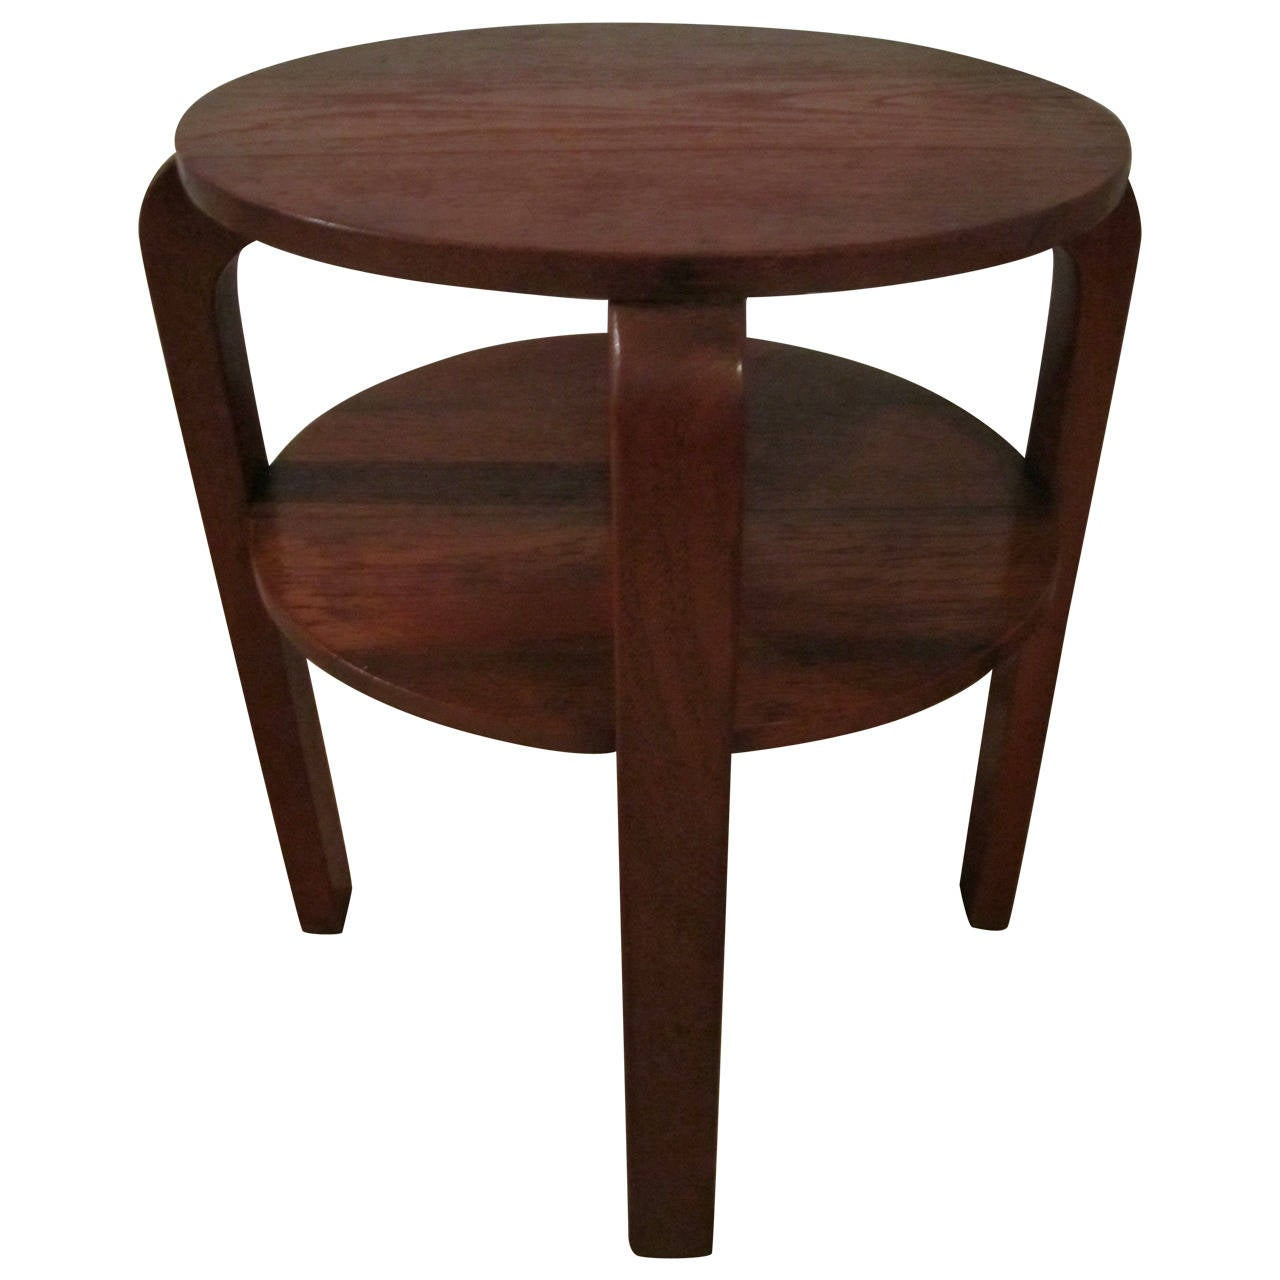 Vintage Scandinavian Modern Two Tier Side Table in the  : 2629192l from www.1stdibs.com size 1280 x 1280 jpeg 81kB